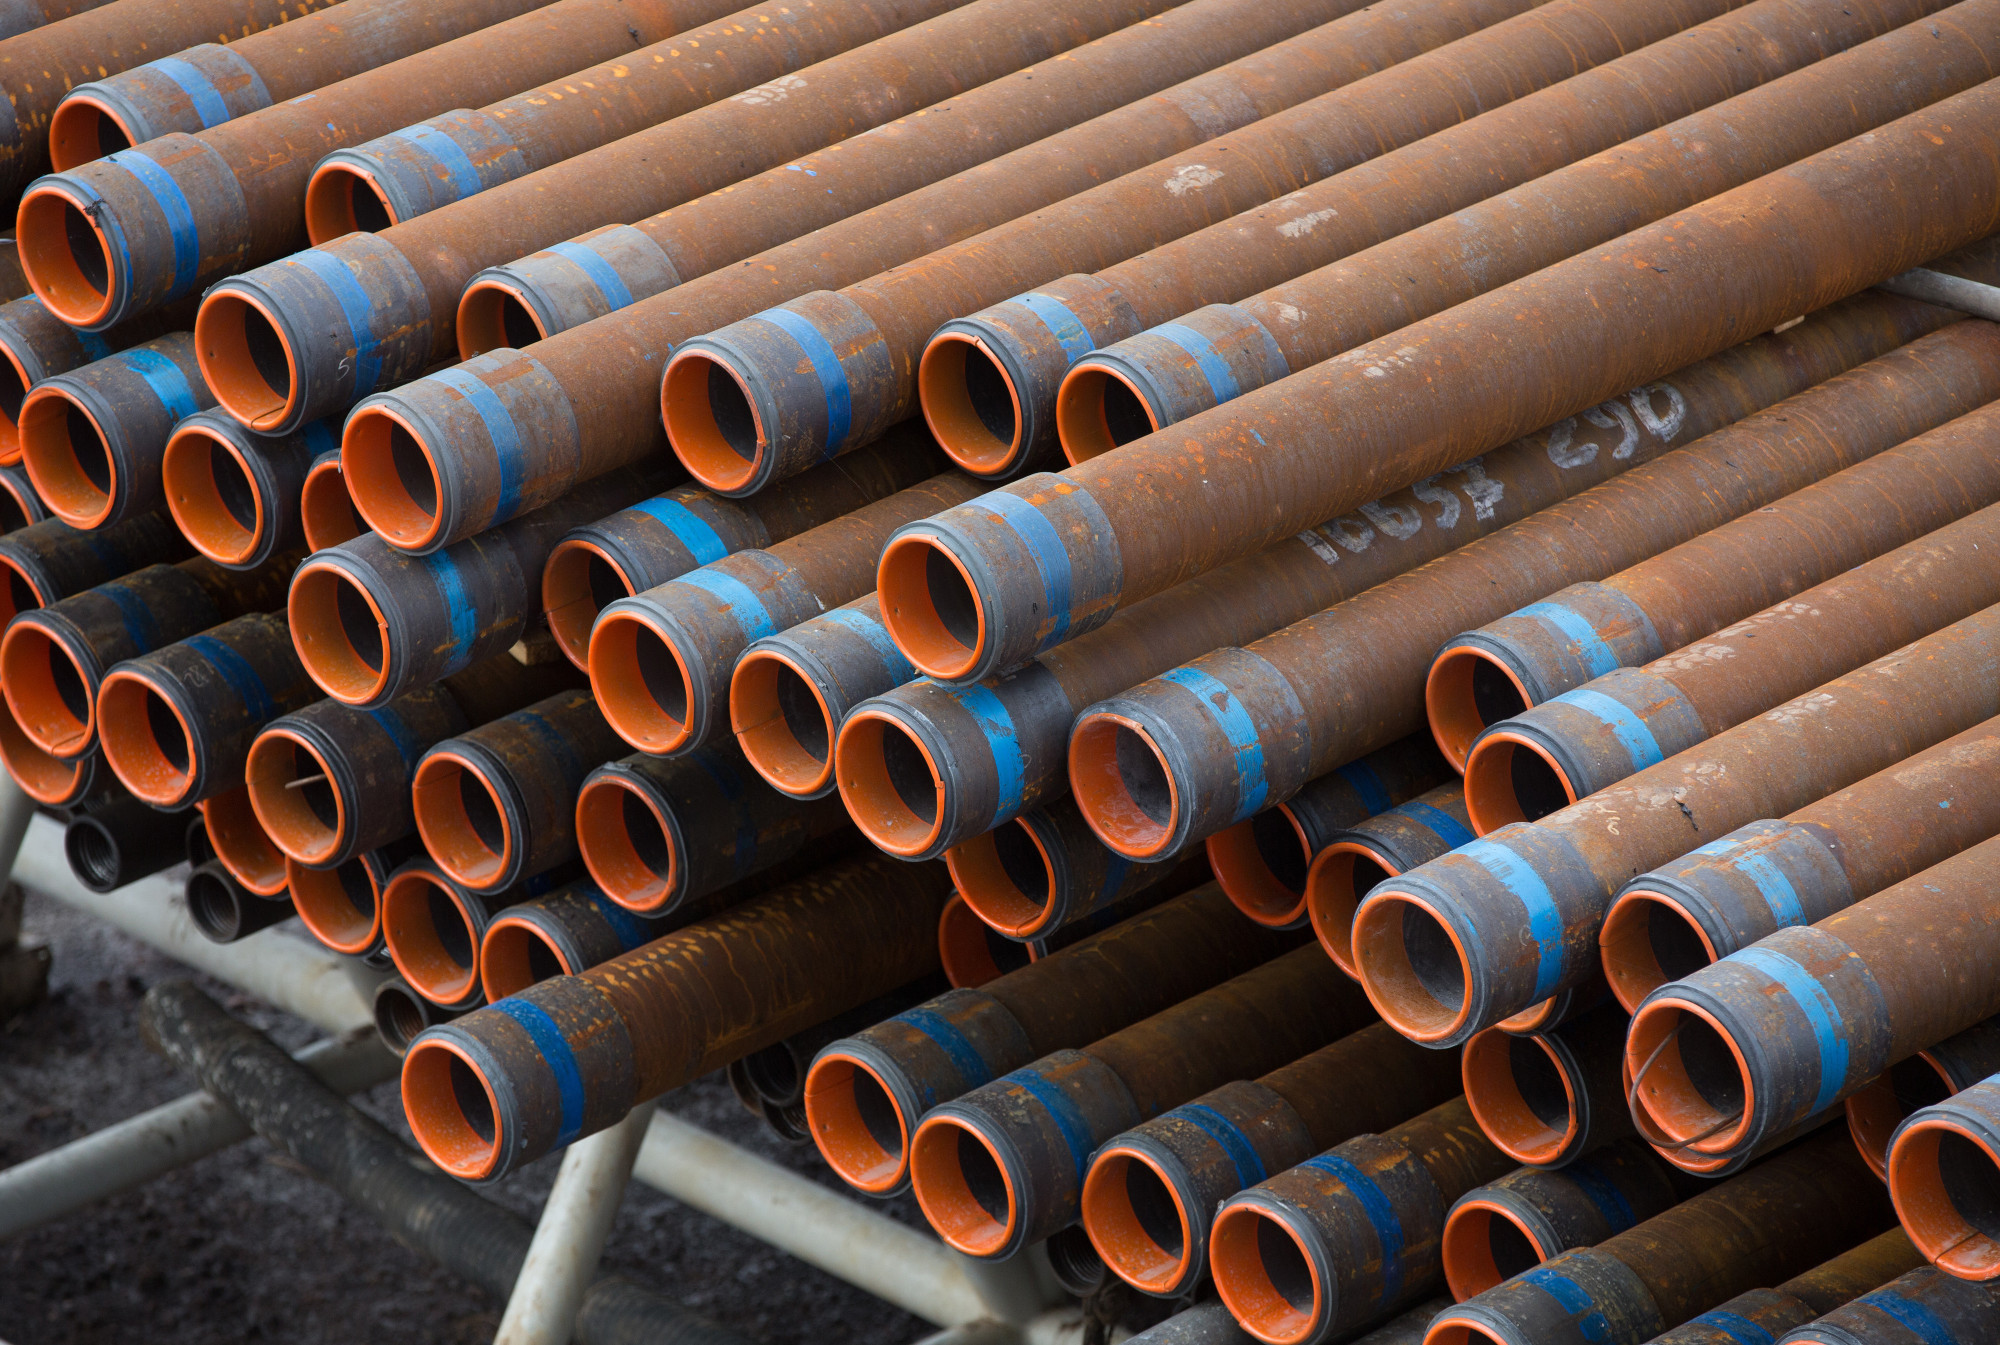 Drill pipe sections sit in storage beside a drill rig during oil drilling operations by Targin JSC, a unit of Sistema PJSFC, in an oilfield operated by Bashneft PAO near Ufa, Russia, on Thursday, Sept. 29, 2016. Bashneft distributes petroleum products and petrochemicals around the world and in Russia via filling stations. Photographer: Andrey Rudakov/Bloomberg